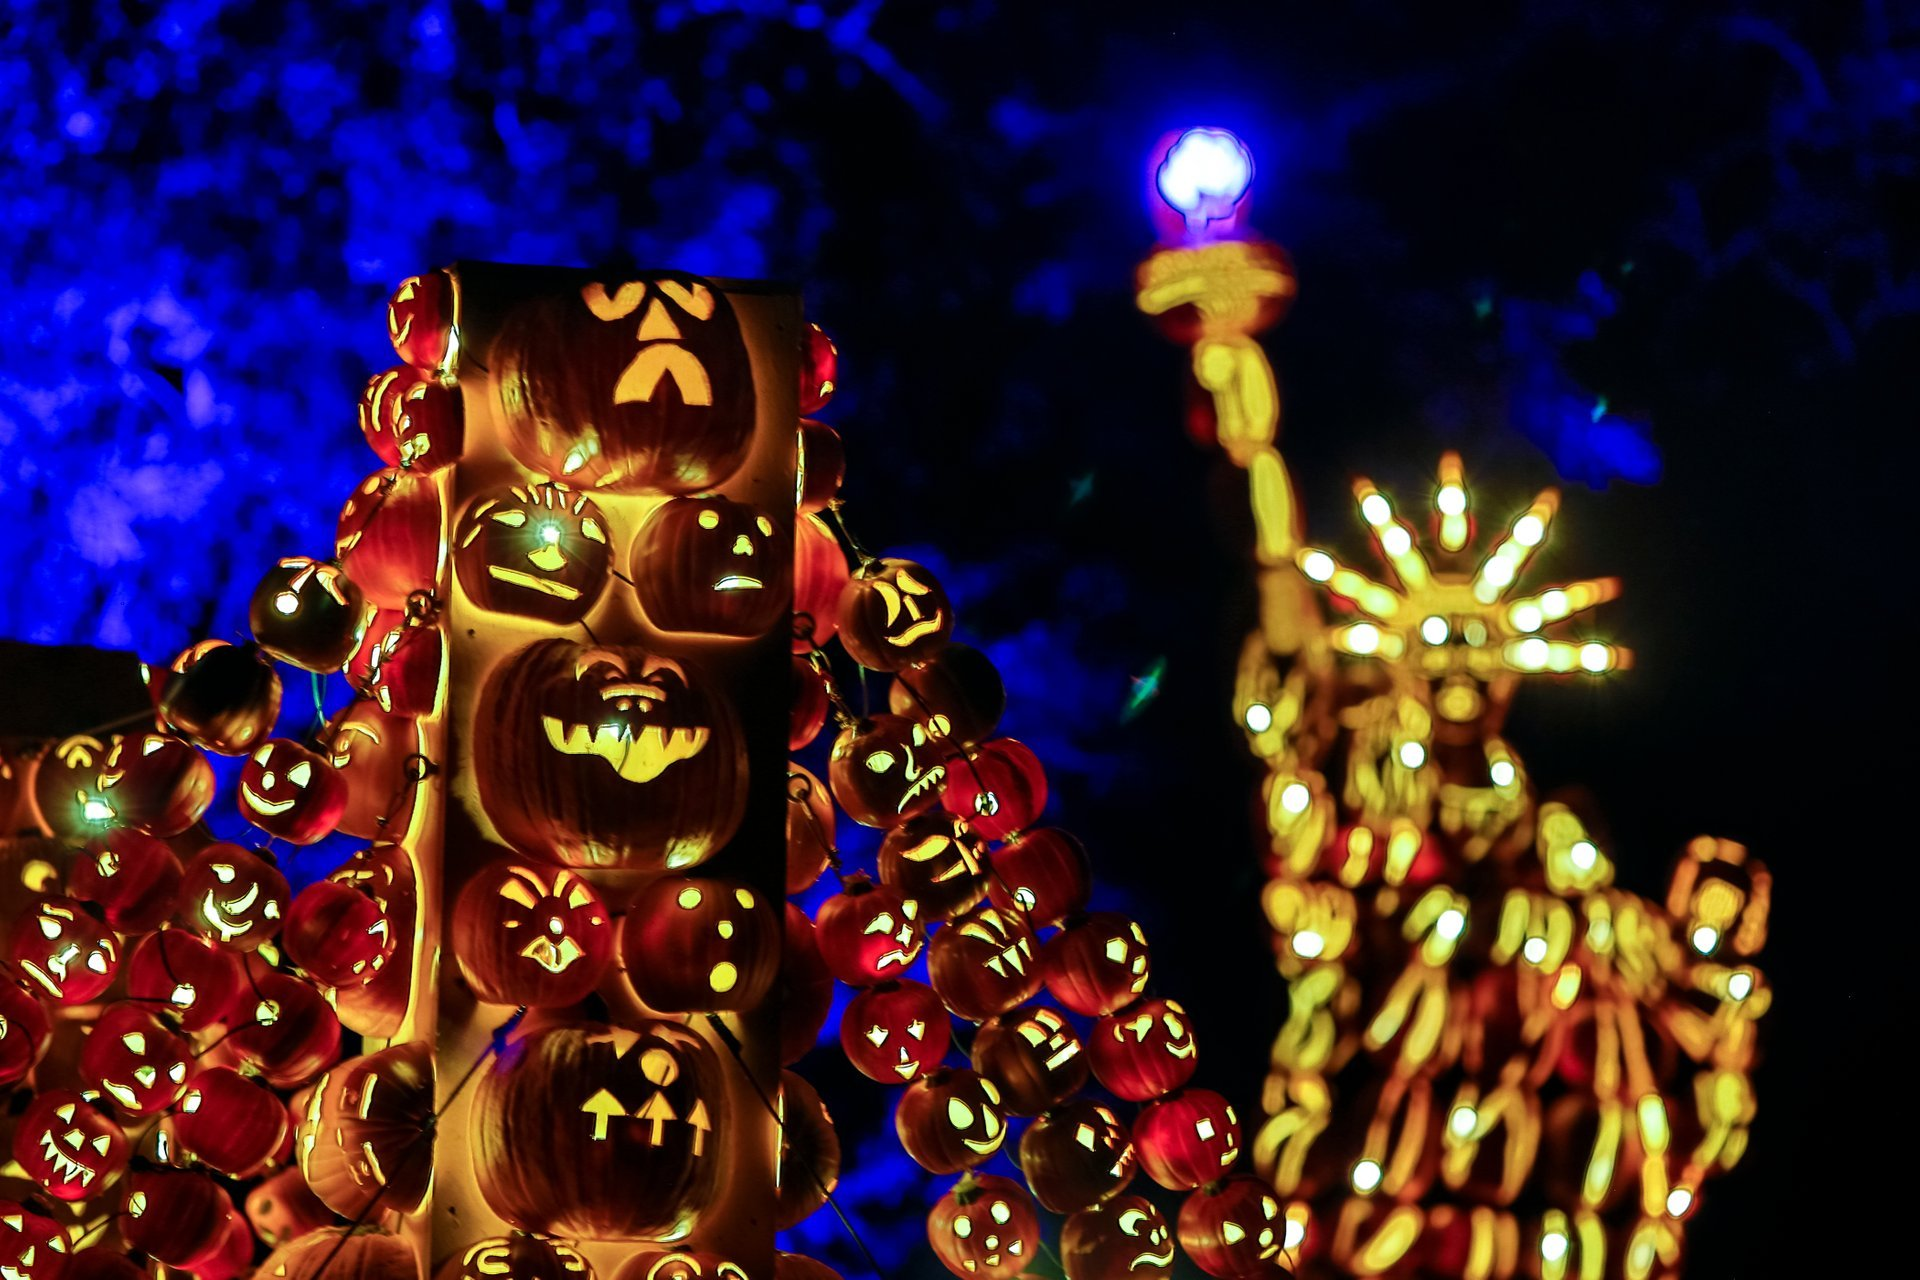 How To Get Tickets To The Great Jack O'lantern Blaze